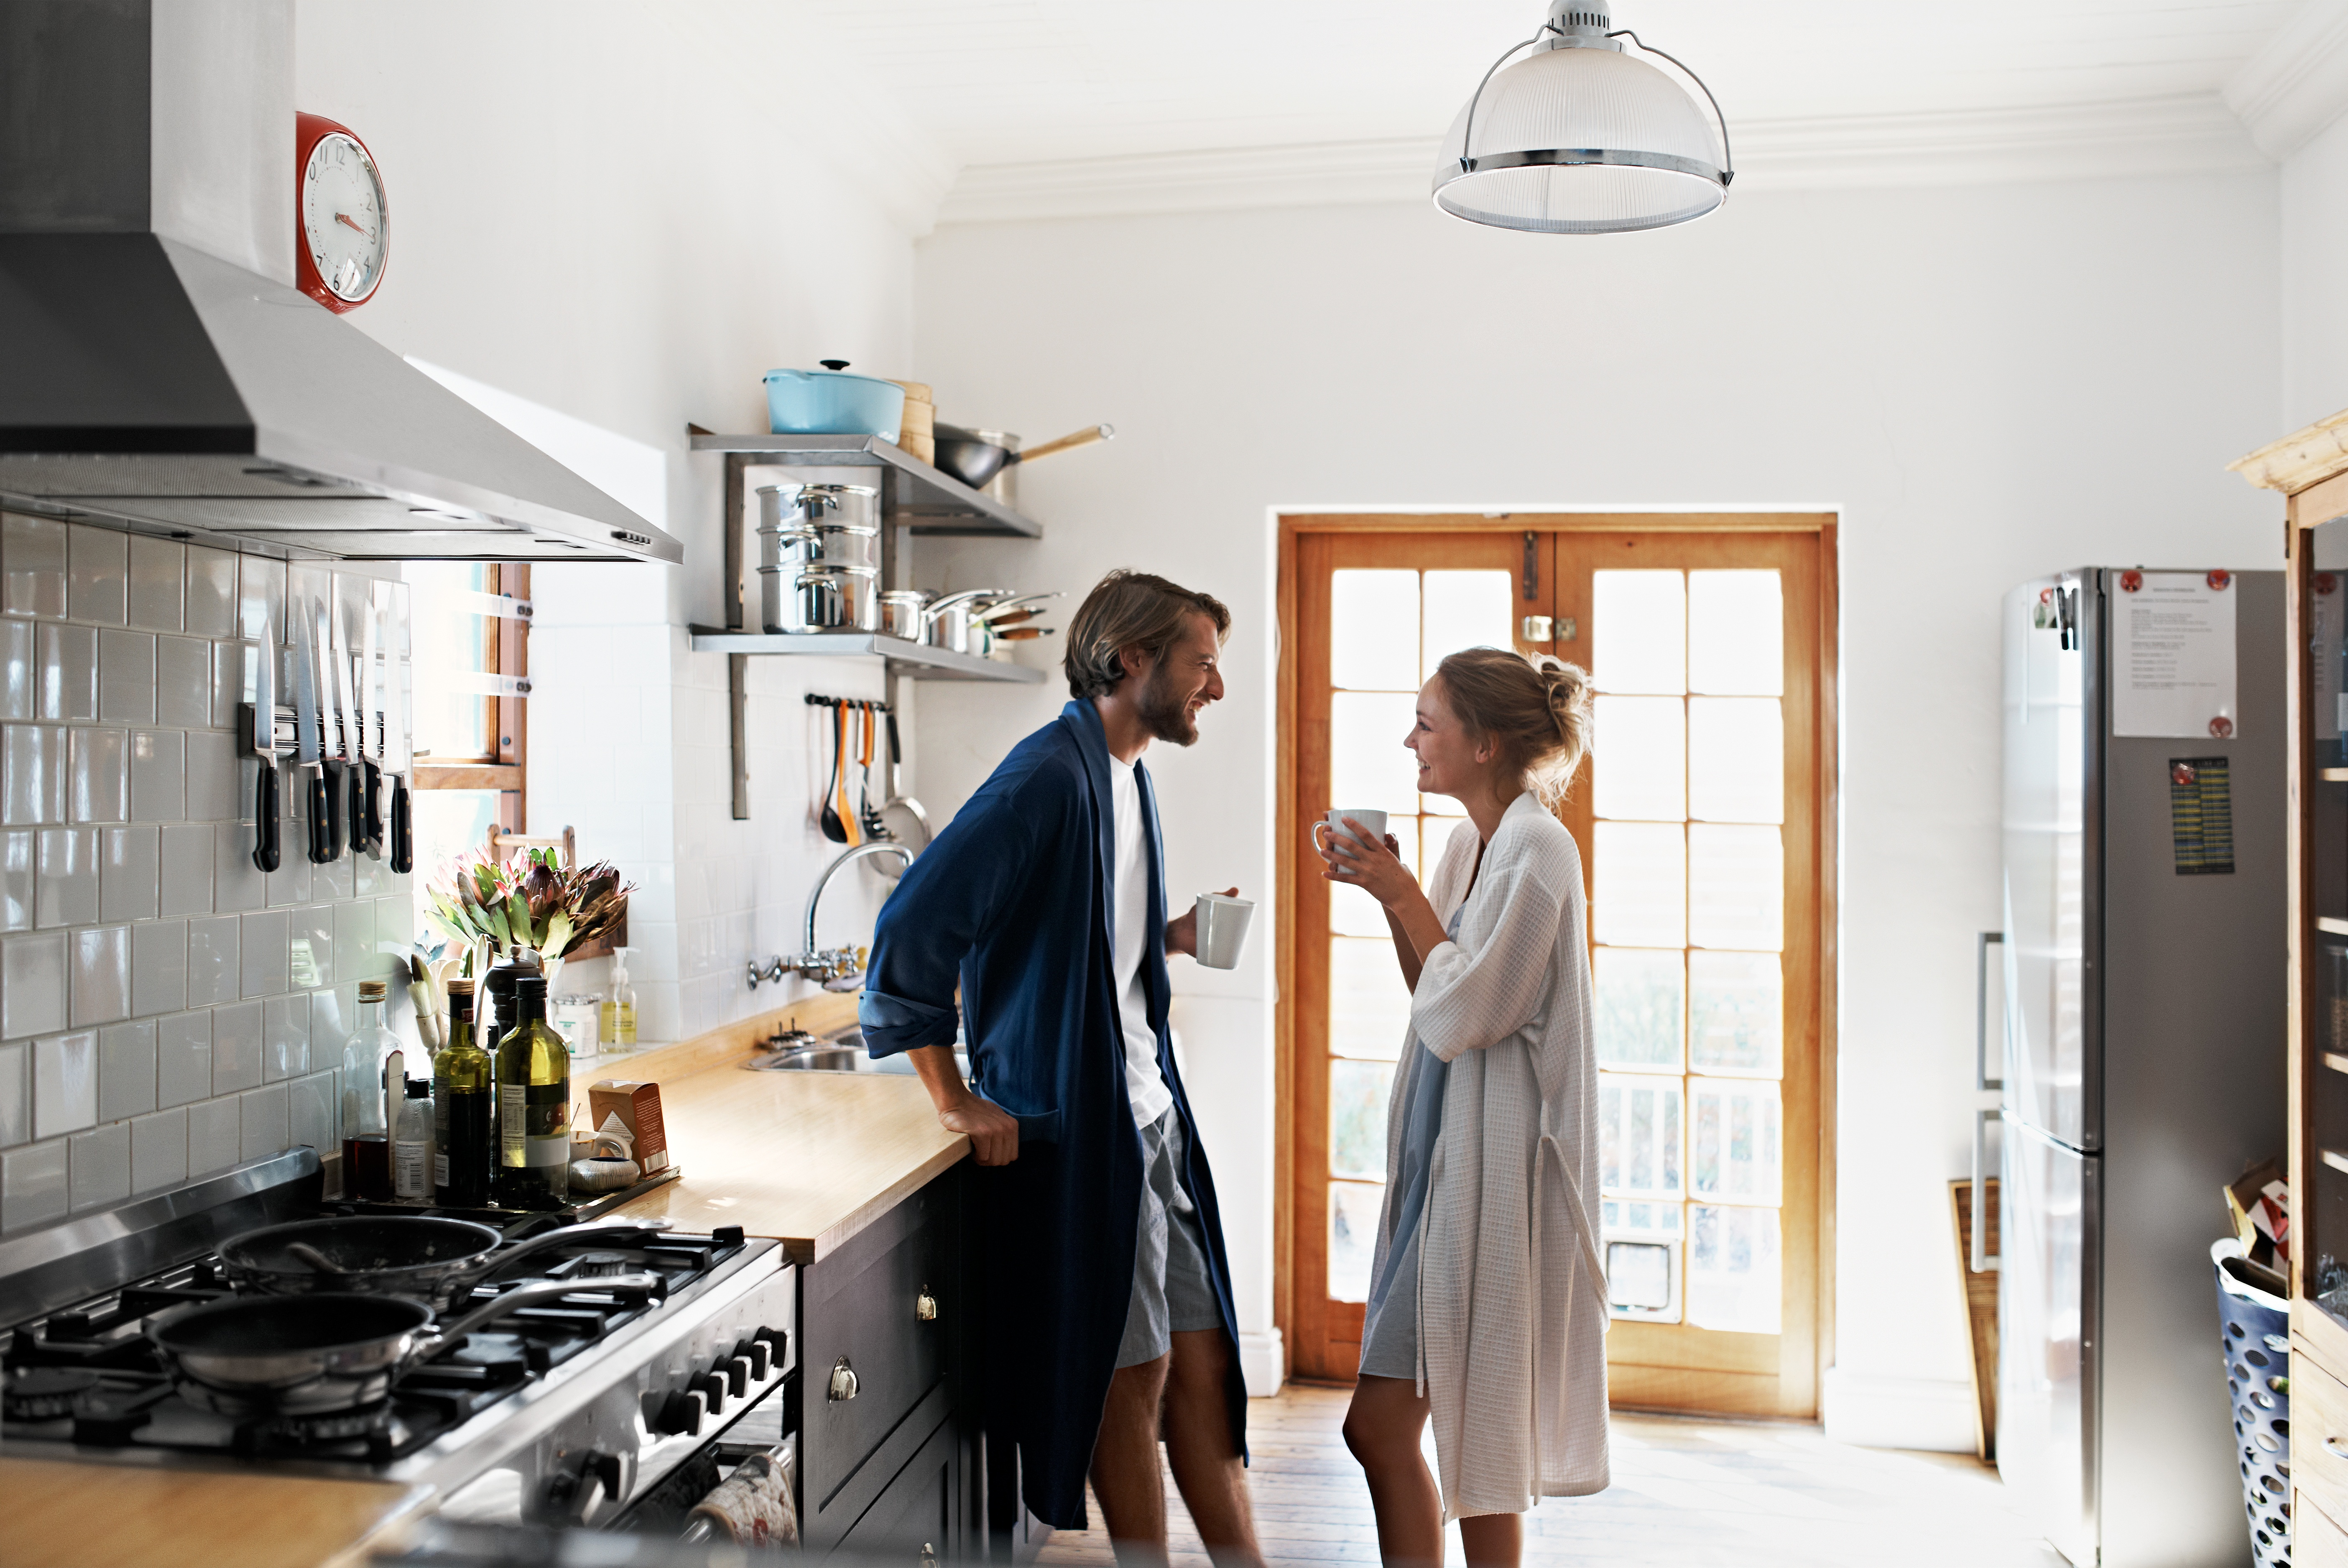 Homeowners will pay £3,000 more for a smart home